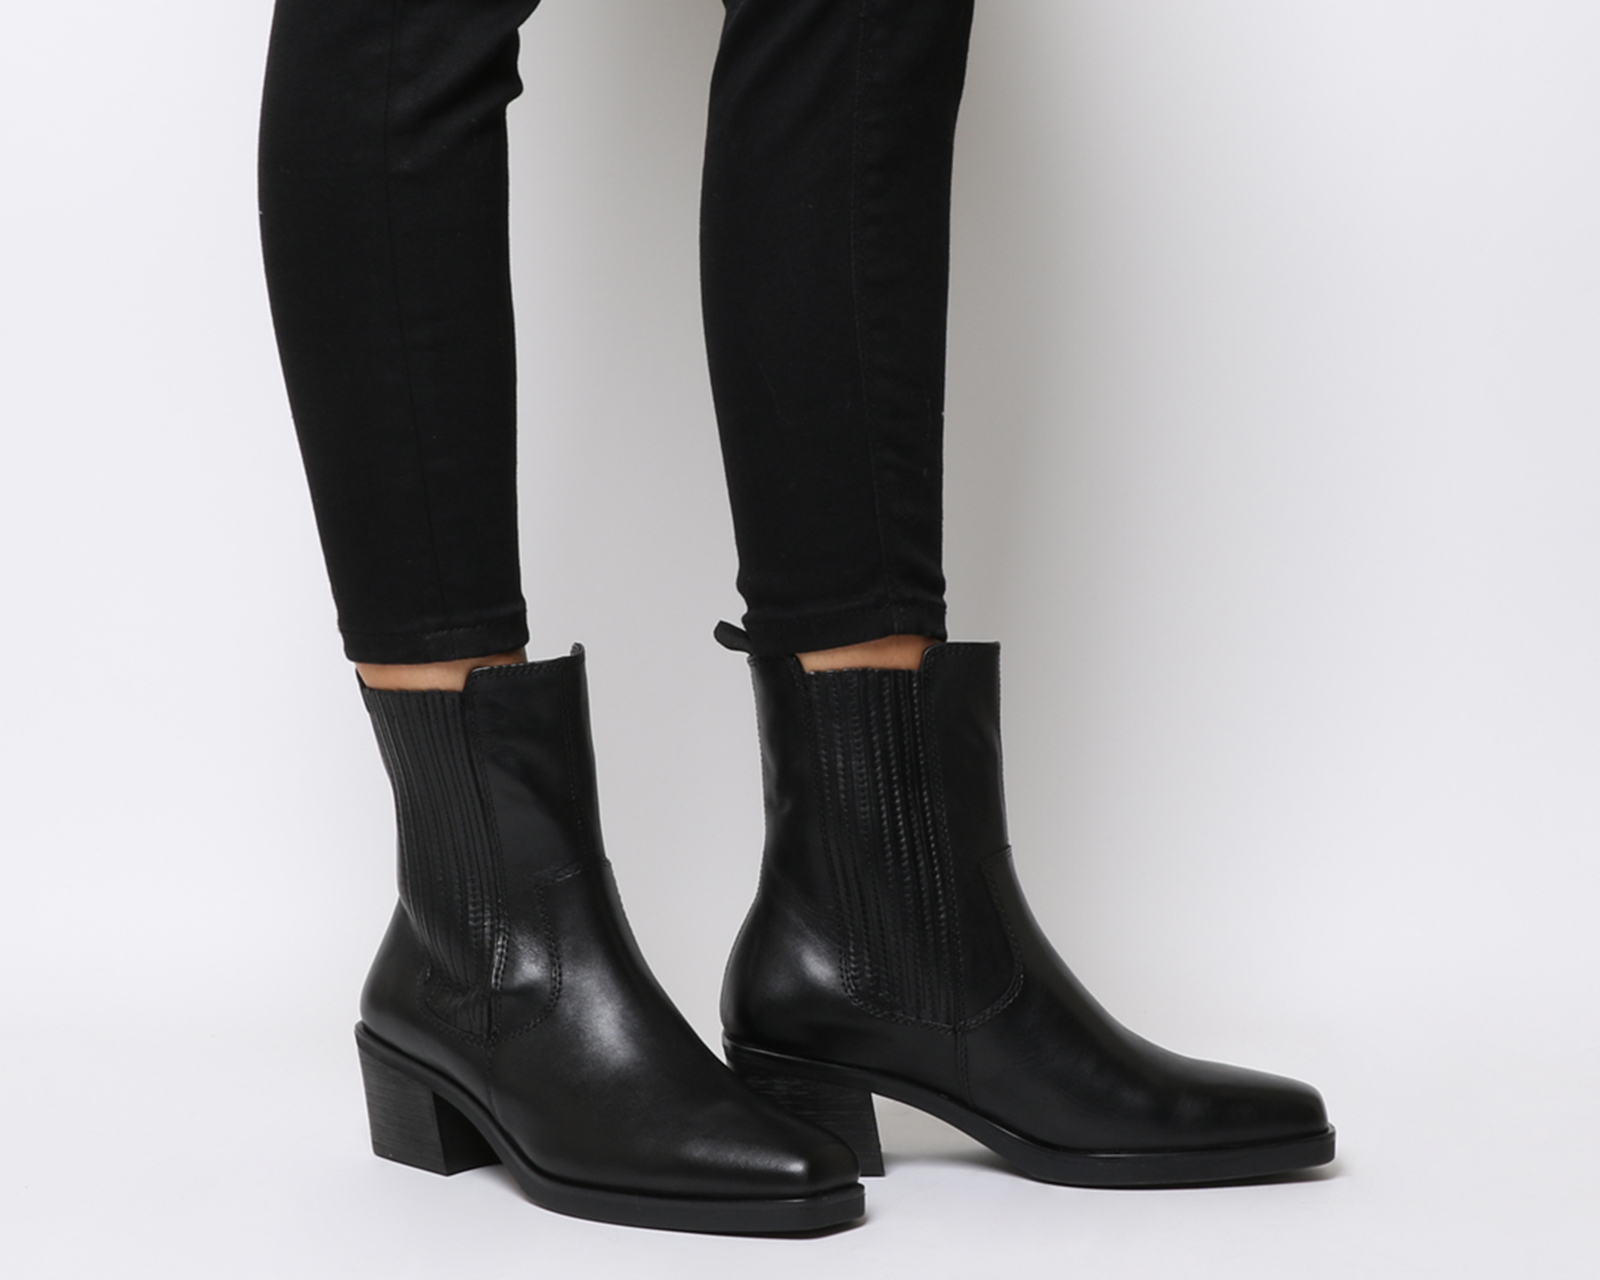 9b96ba9ded0 Details about Womens Vagabond Simone High Chelsea Boots Black Leather Boots